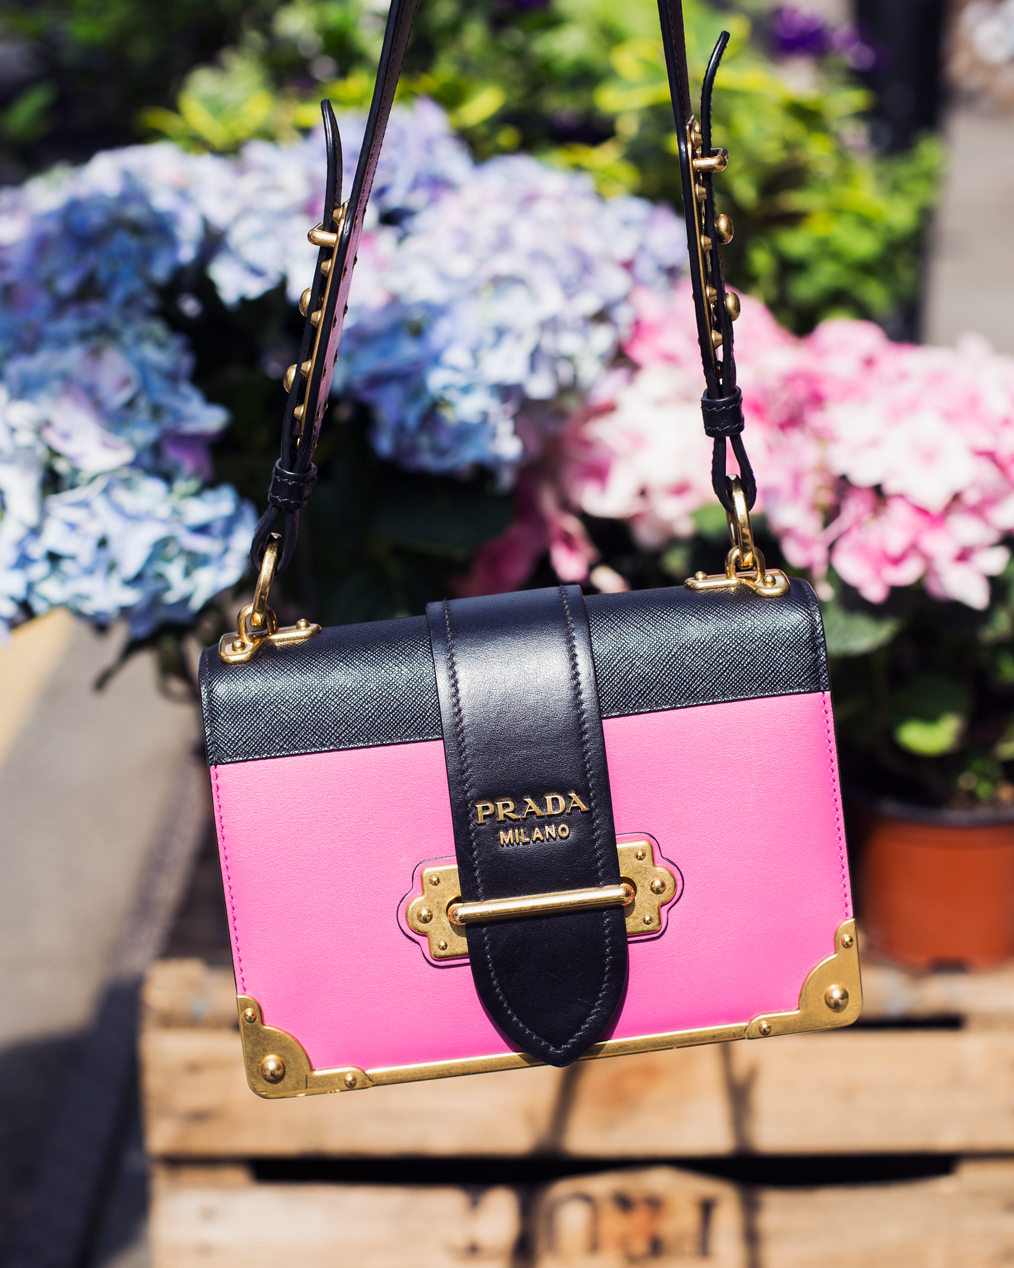 83031de31ce4 PRADA CAHIER BAG REVIEW - Megan Ellaby